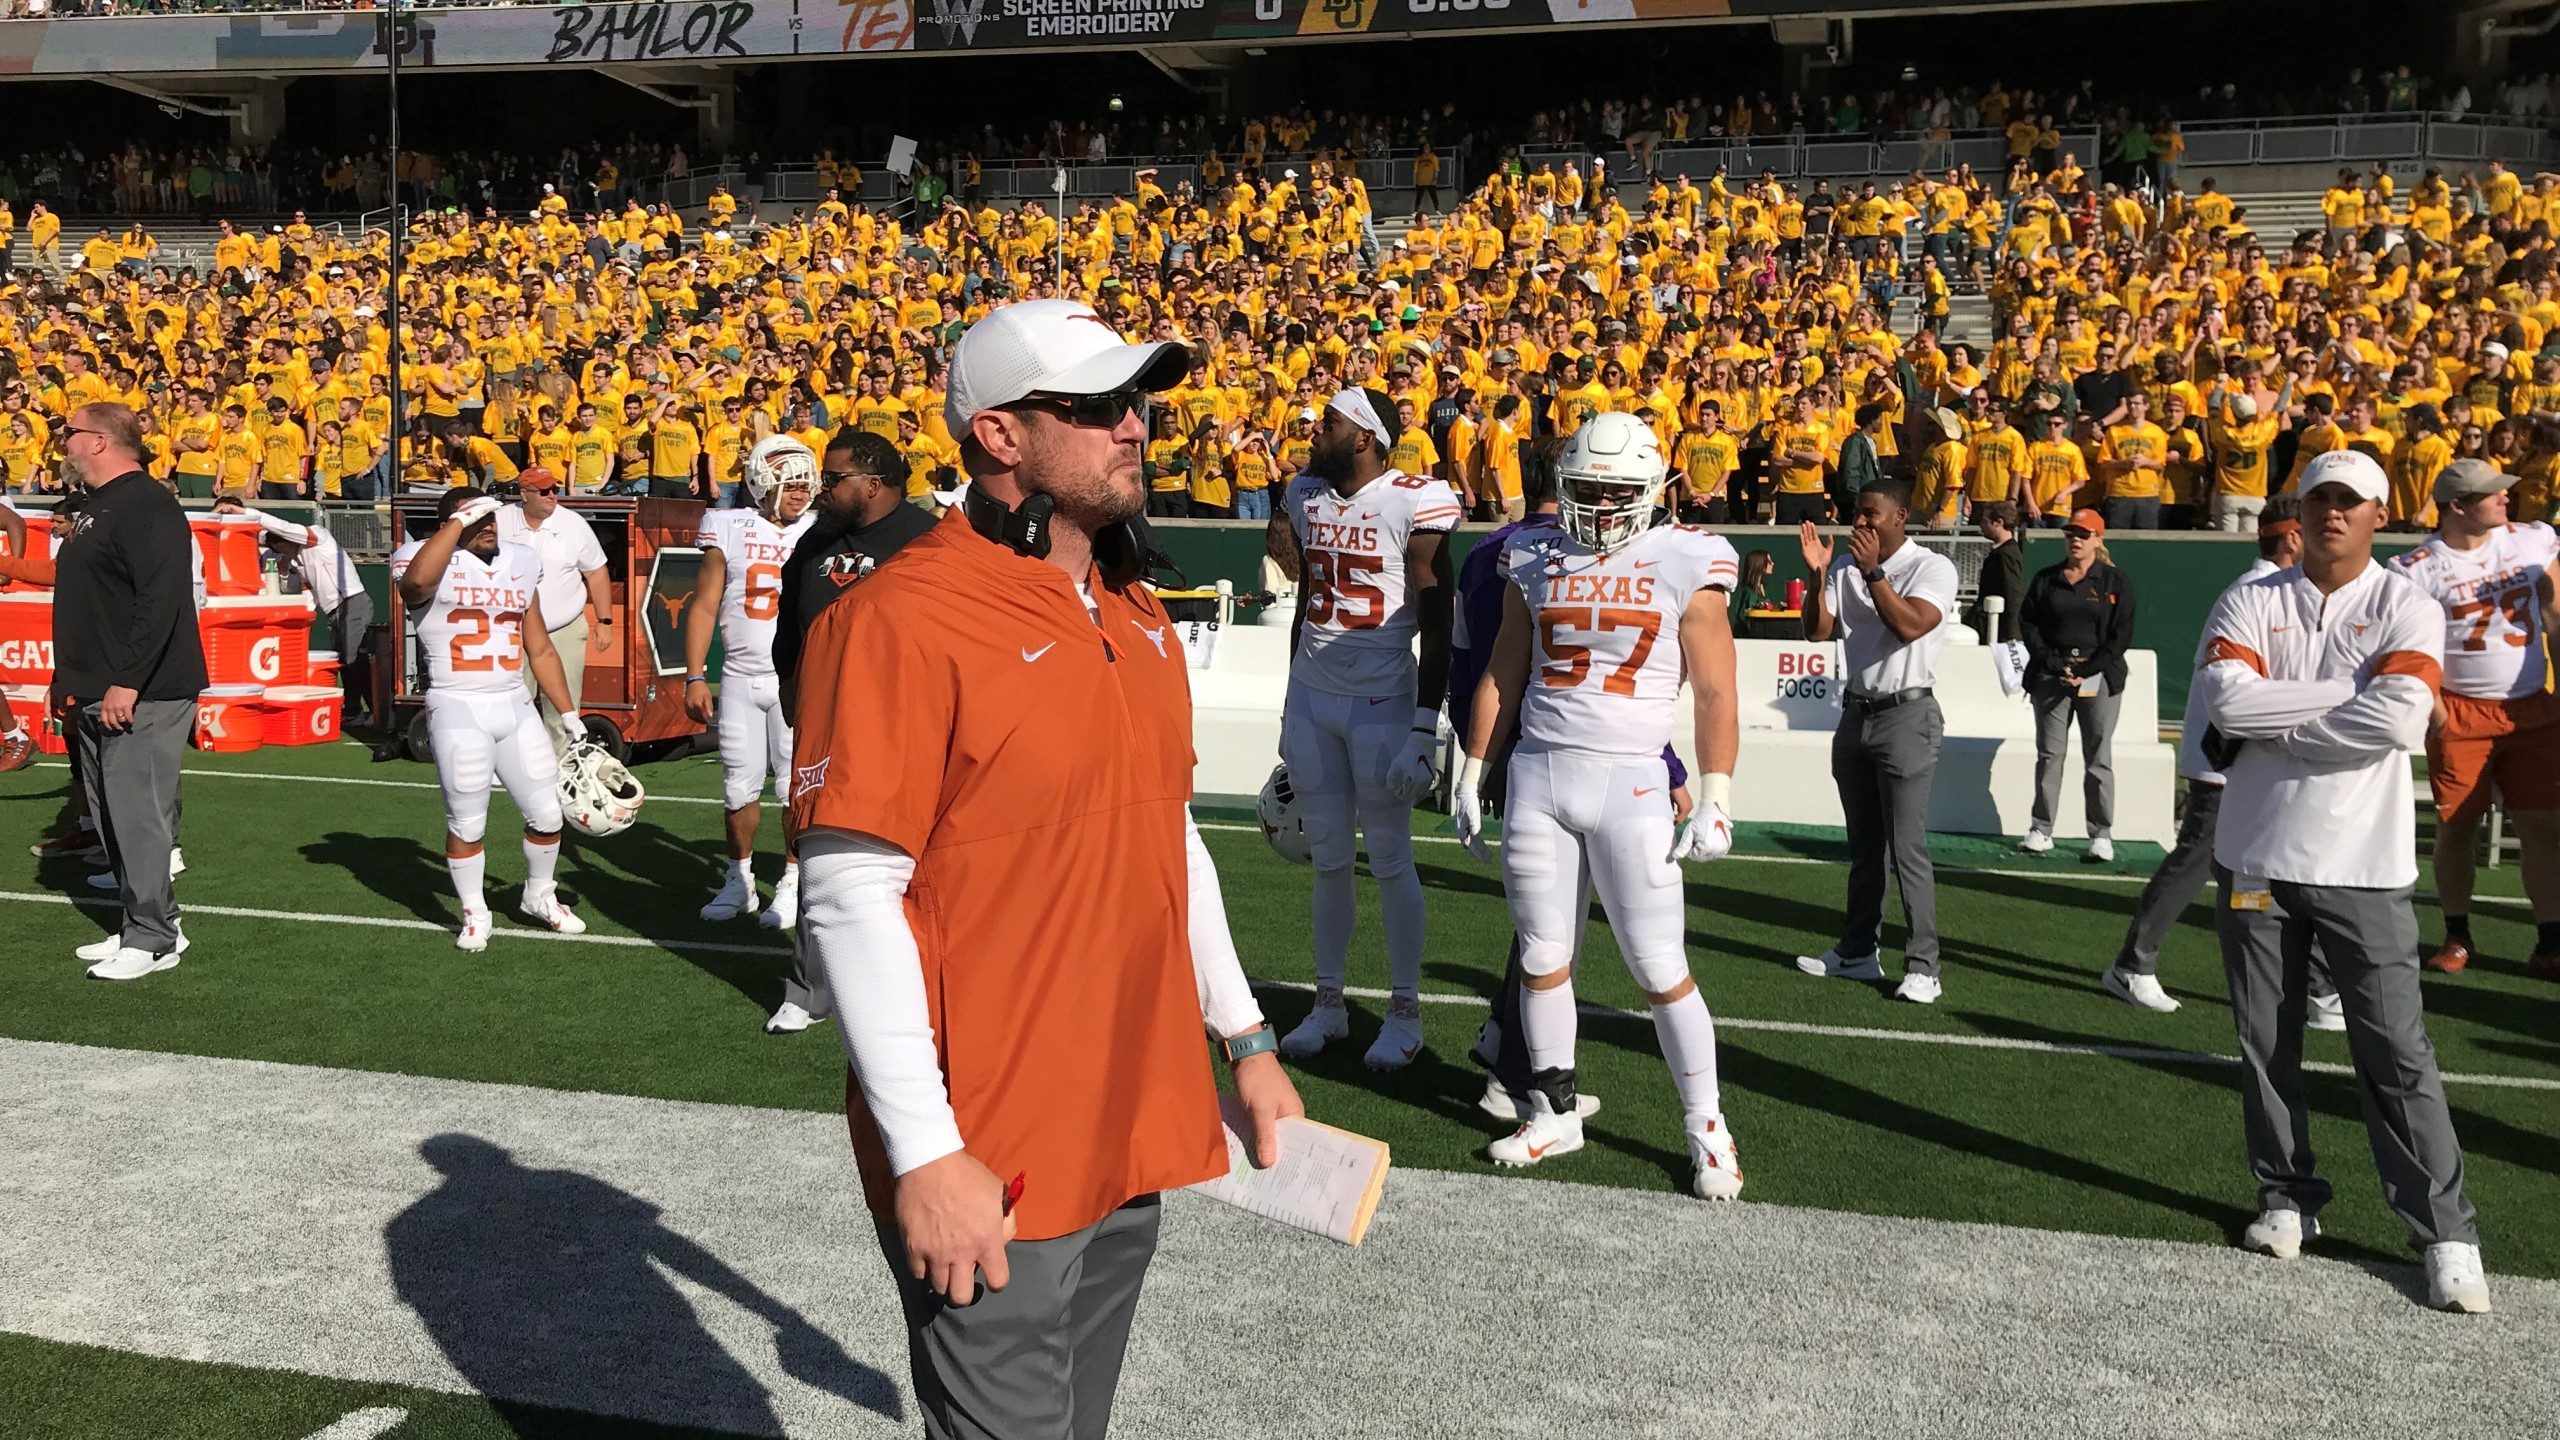 Tom Herman vs Baylor